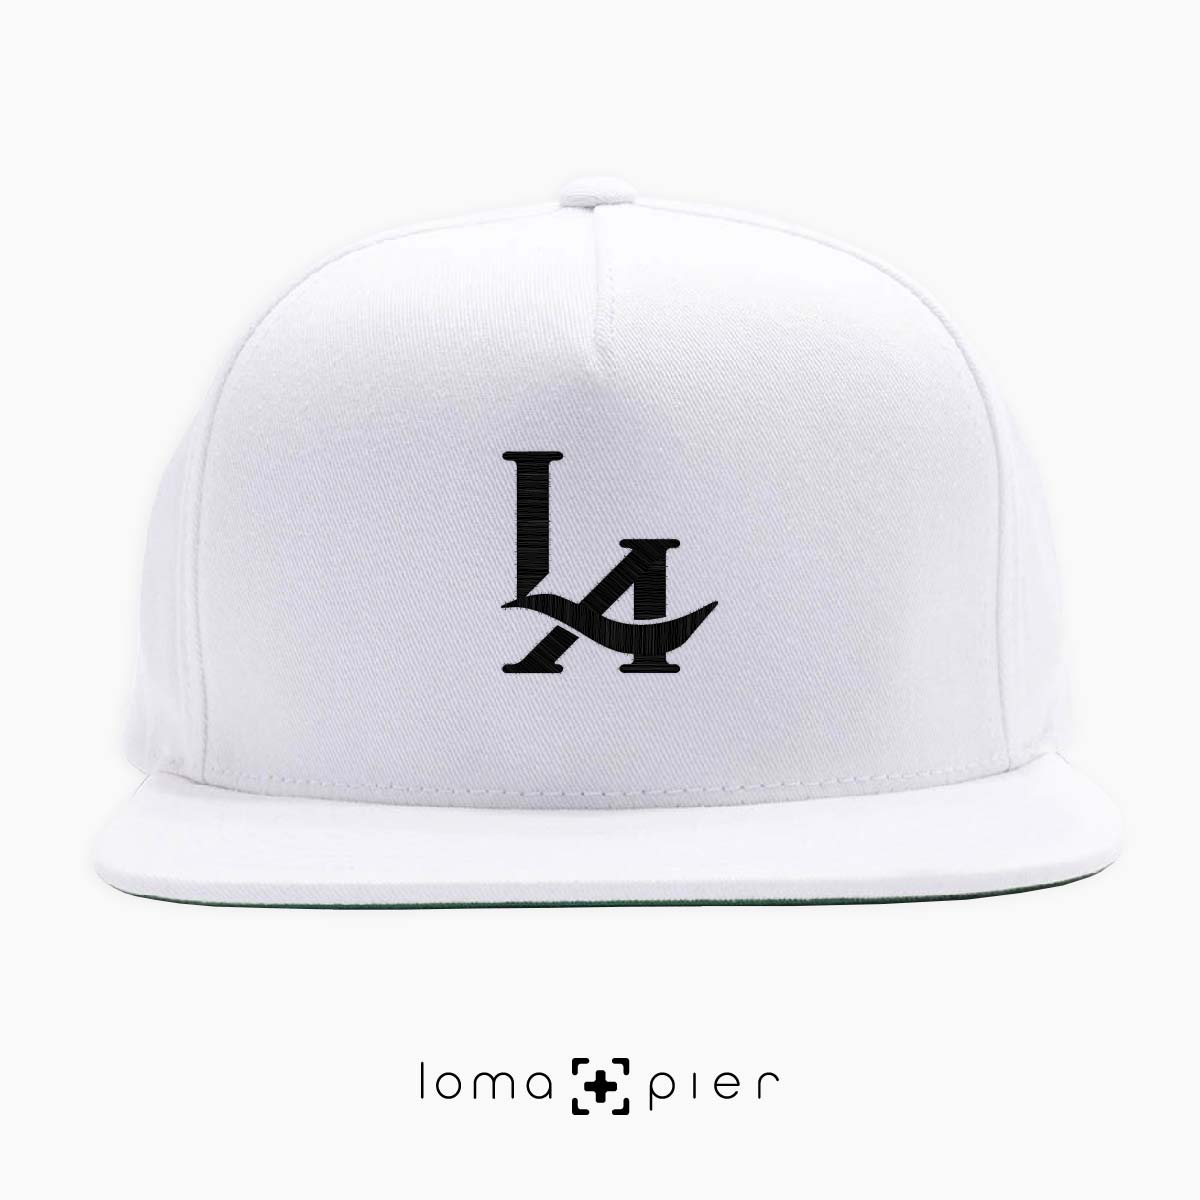 f24380acf50 los angeles LA logo embroidered on a white classic snapback hat by loma+pier  hat